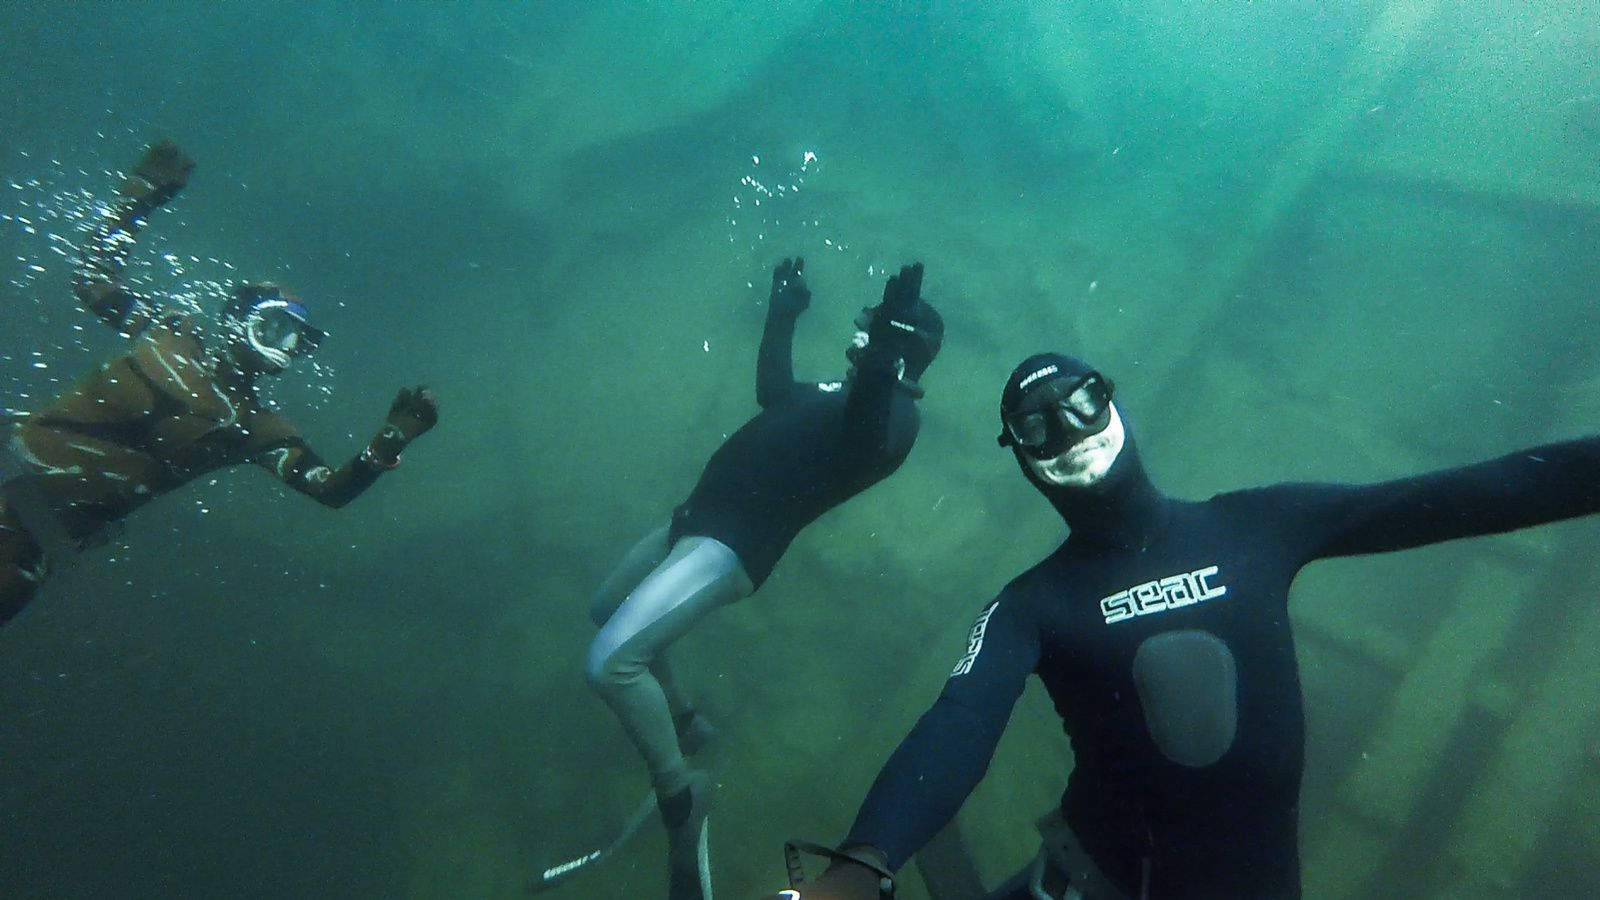 An, Dieter and Olivier enjoying the crystal clear water :D (photos by Dieter Dejonghe).